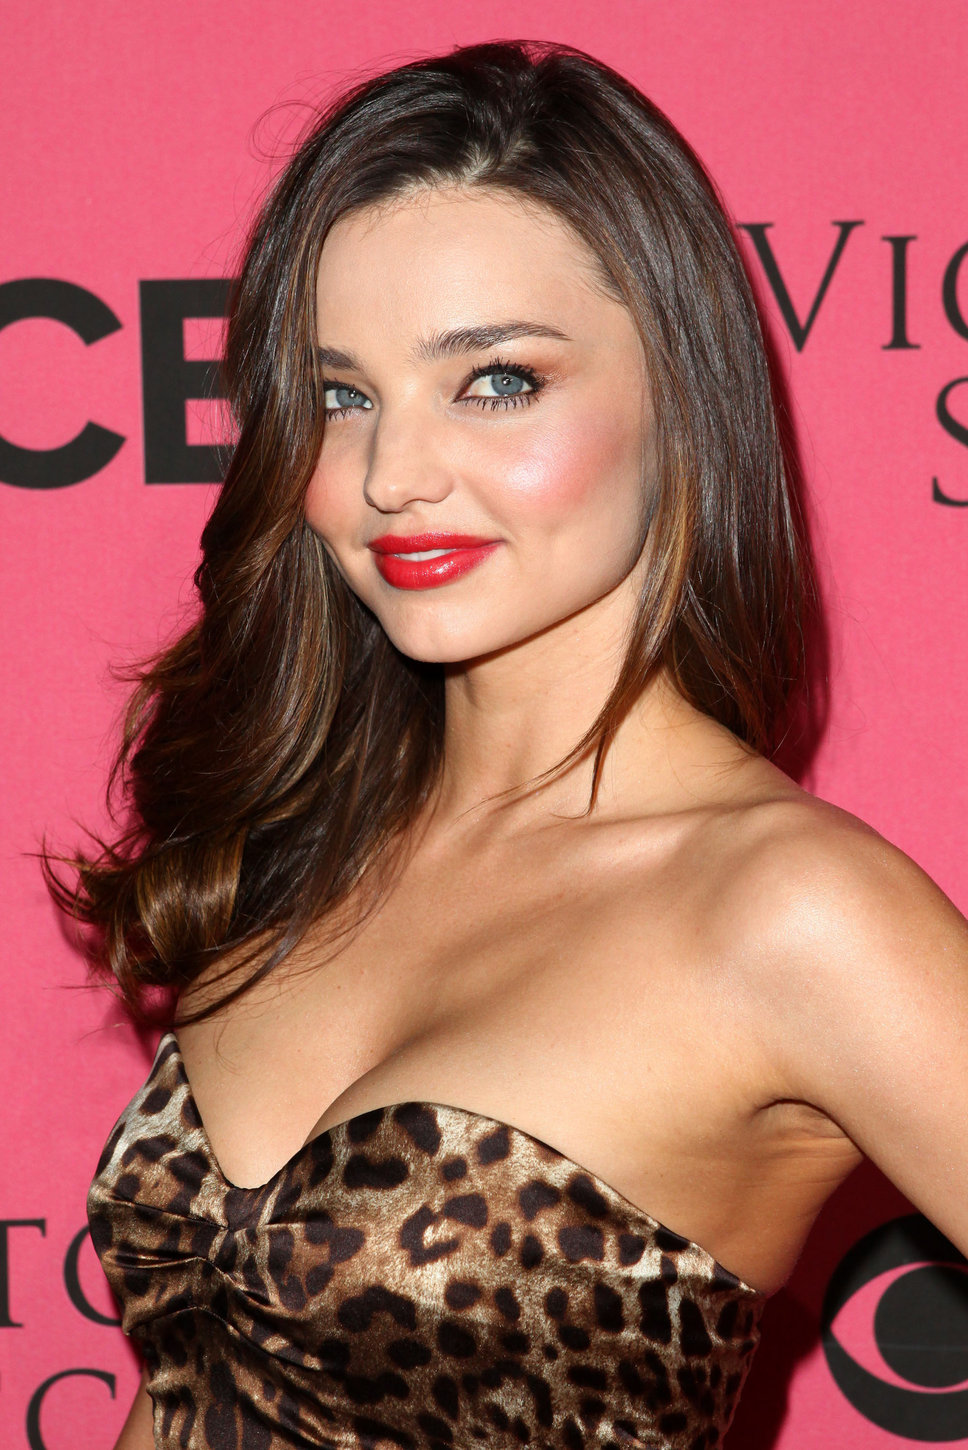 Miranda Kerr Boobs